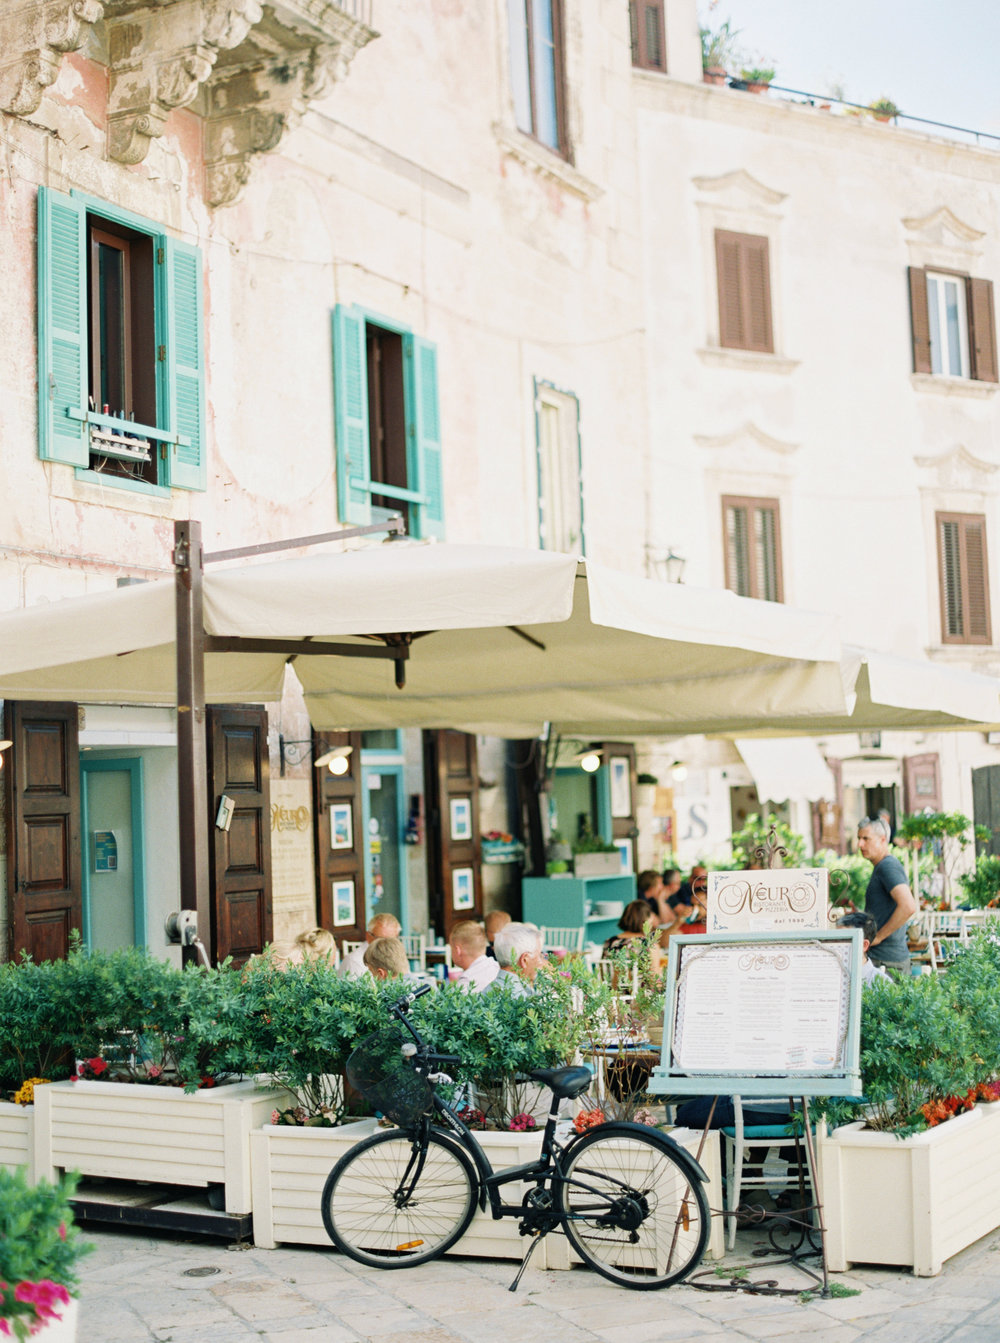 Streets of Polignano a Mare - photographed by Tracy Enoch, destination wedding planned by Meggie Francisco Events